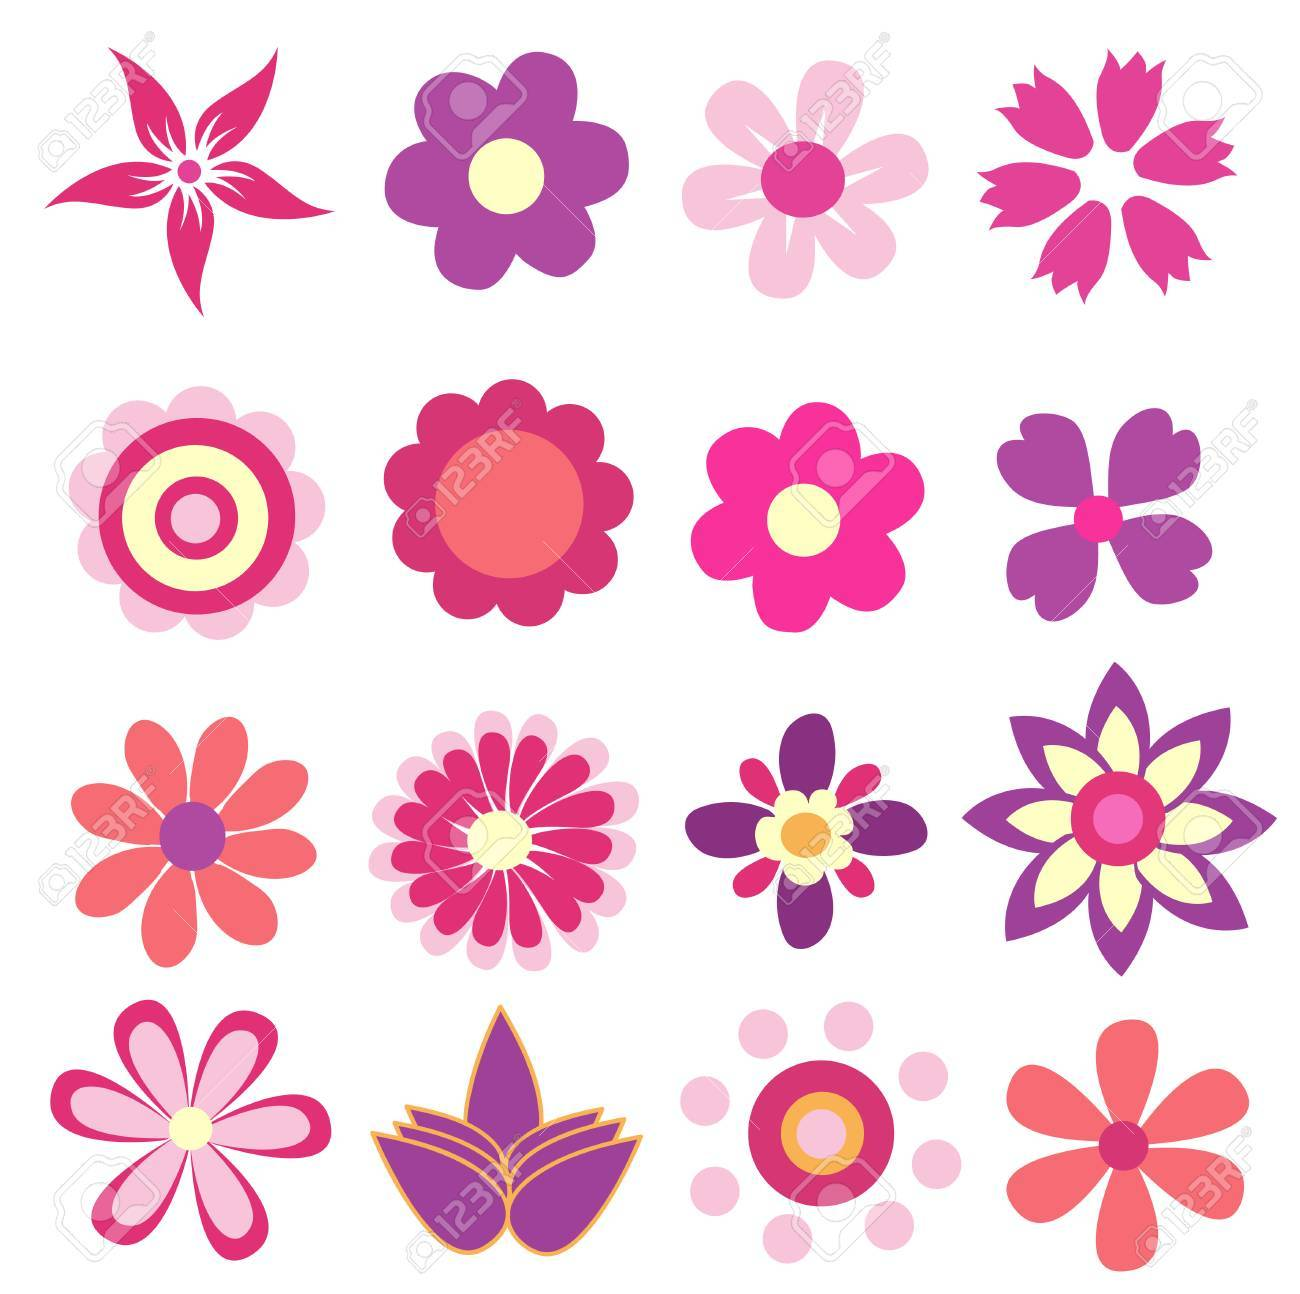 Colorful spring flowers vector illustration royalty free cliparts colorful spring flowers vector illustration stock vector 27919865 mightylinksfo